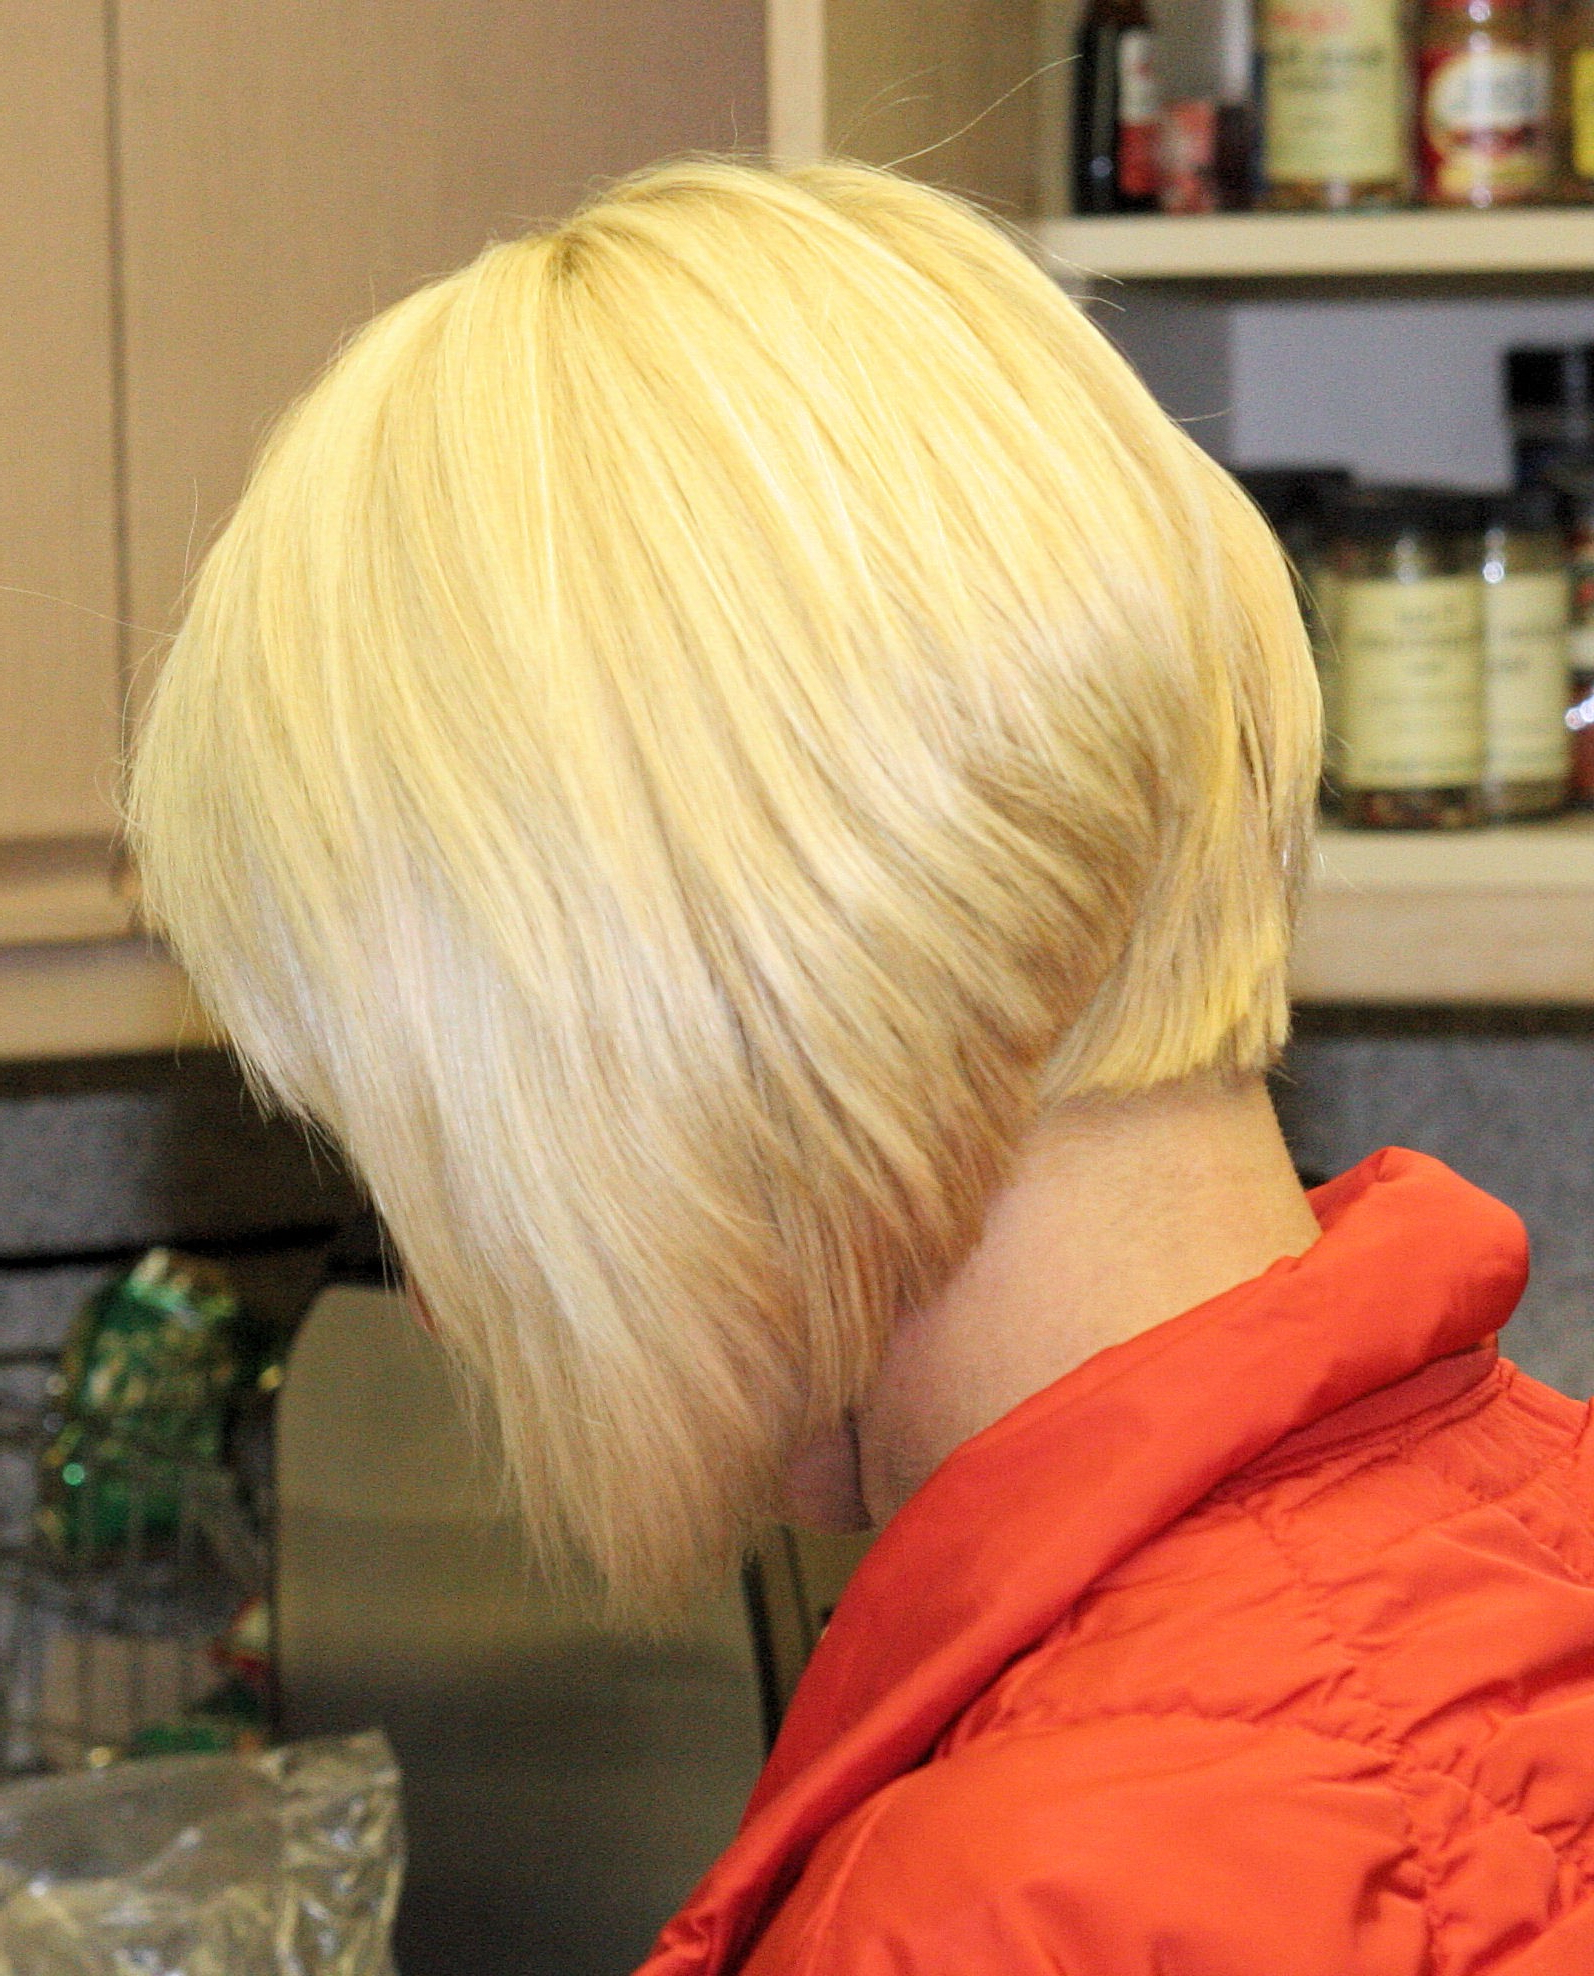 Bob Style Hair Cut For Short Blonde Inverted Bob Haircuts (View 15 of 20)